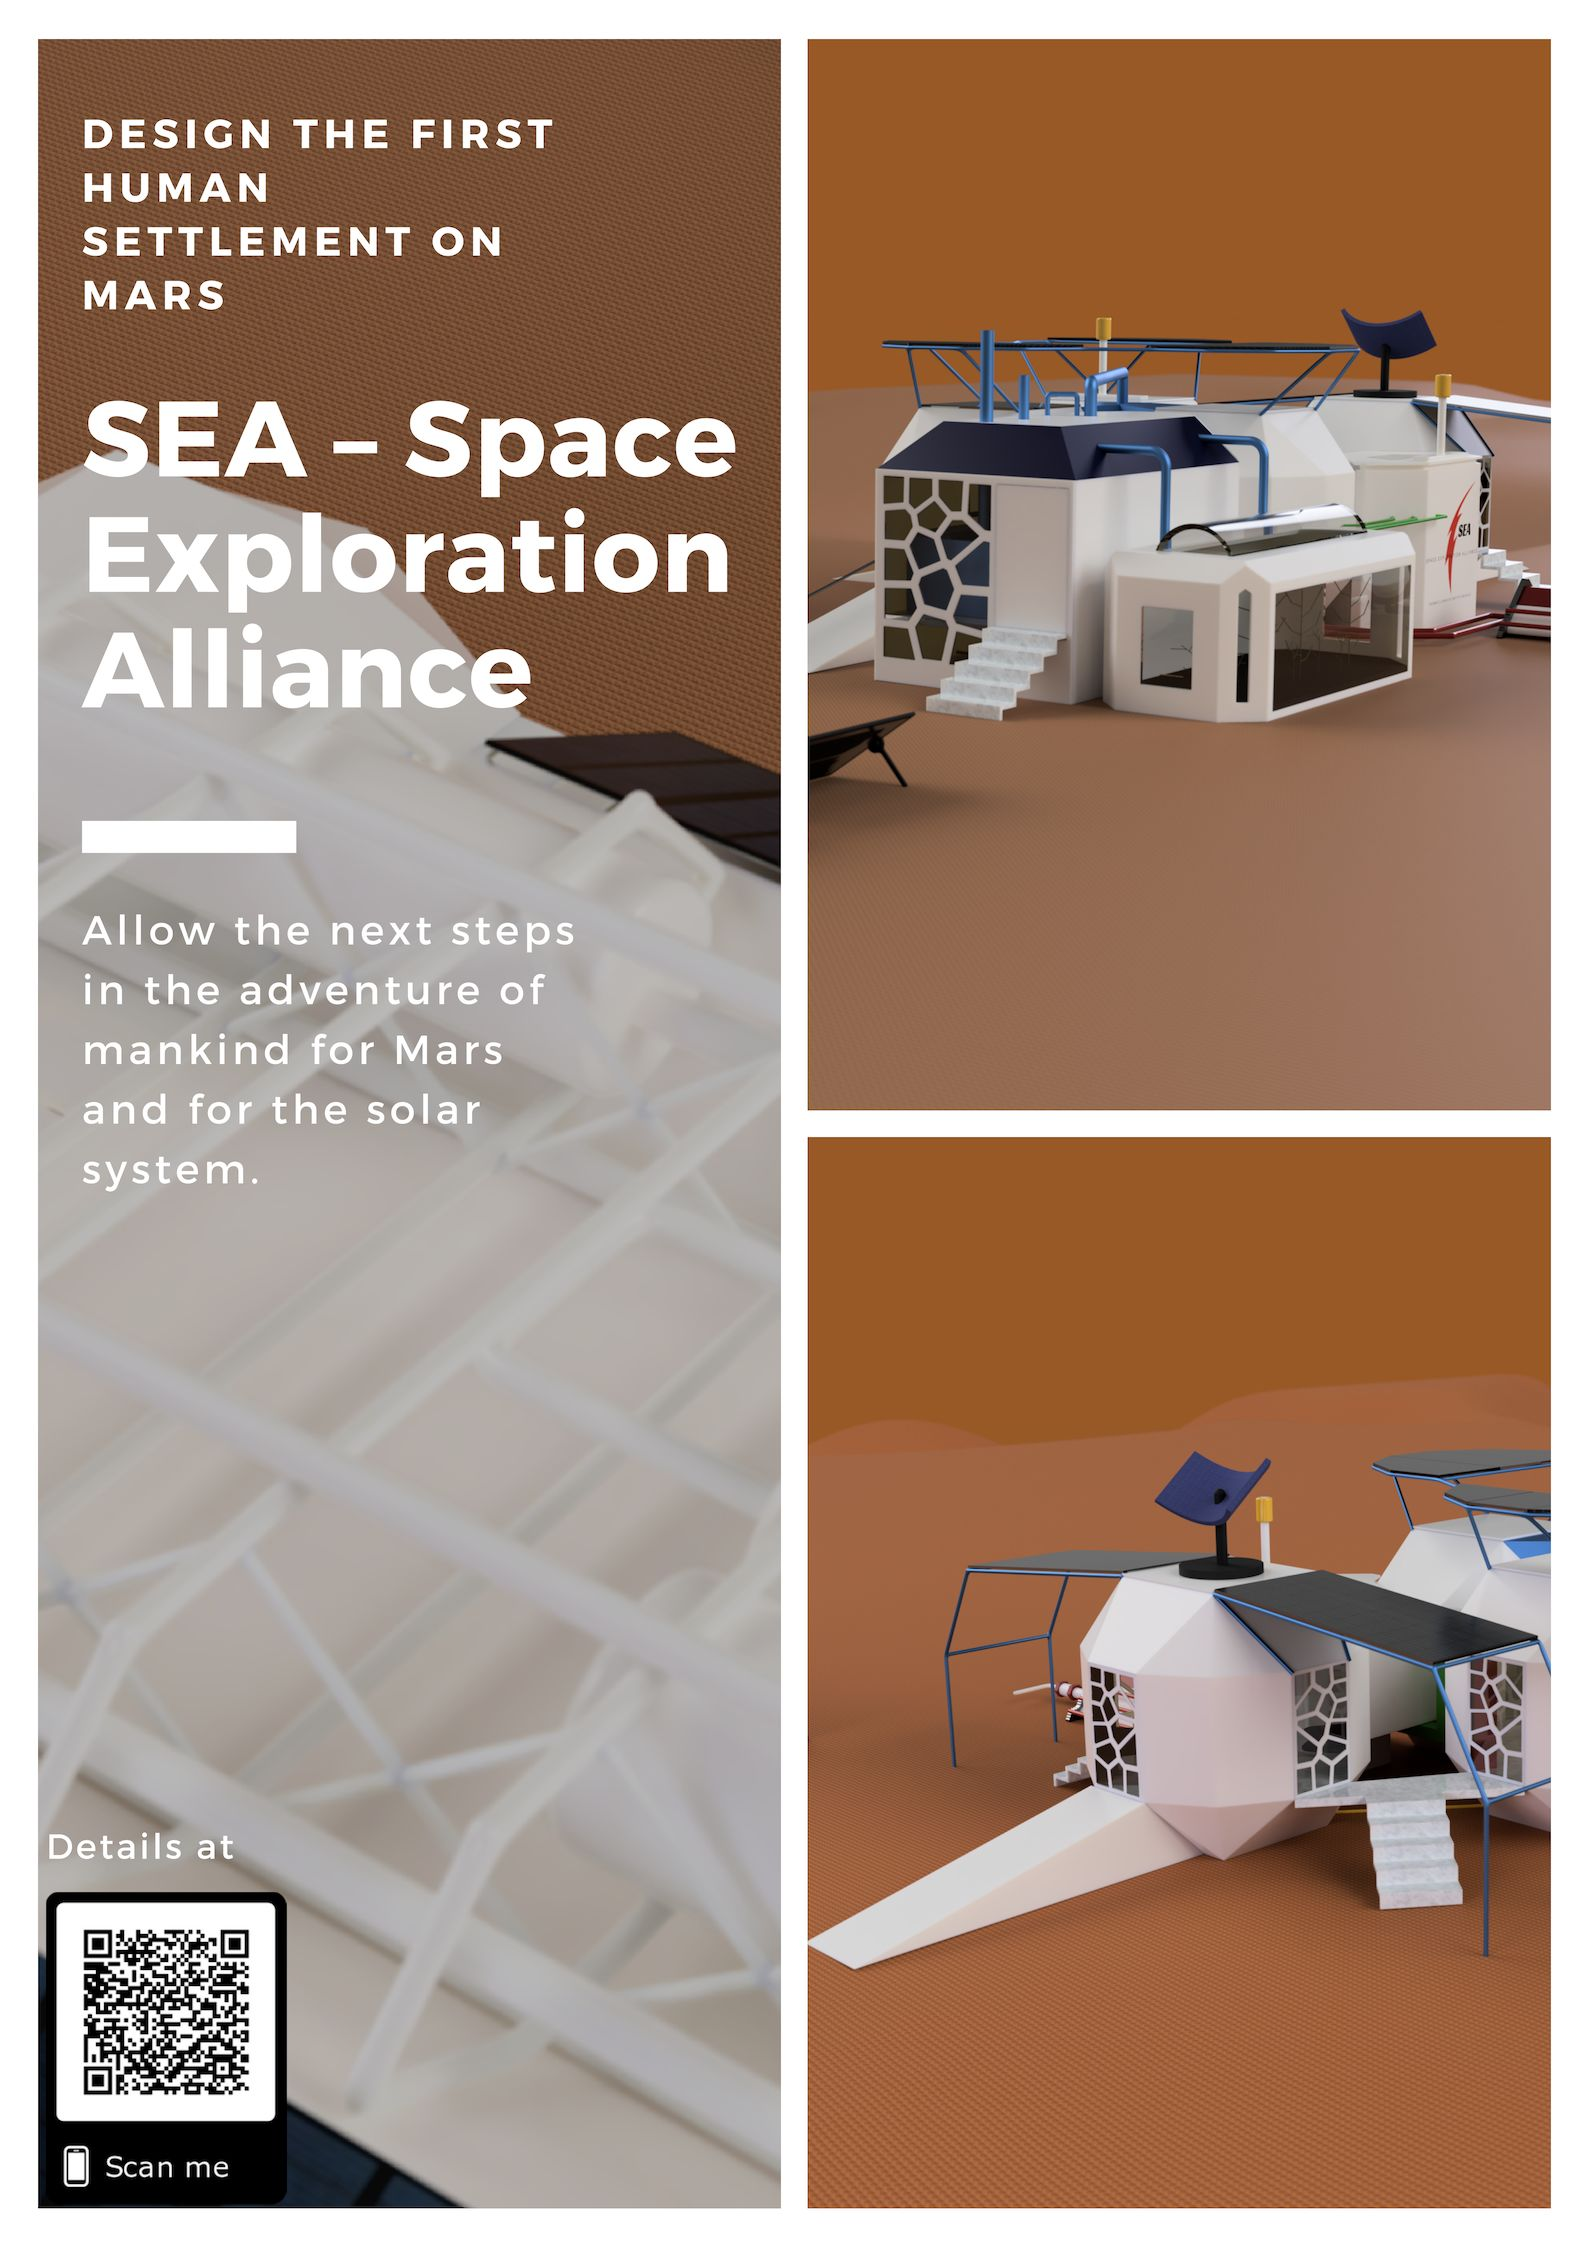 Design-the-first-human-settlement-on-mars-3500-3500